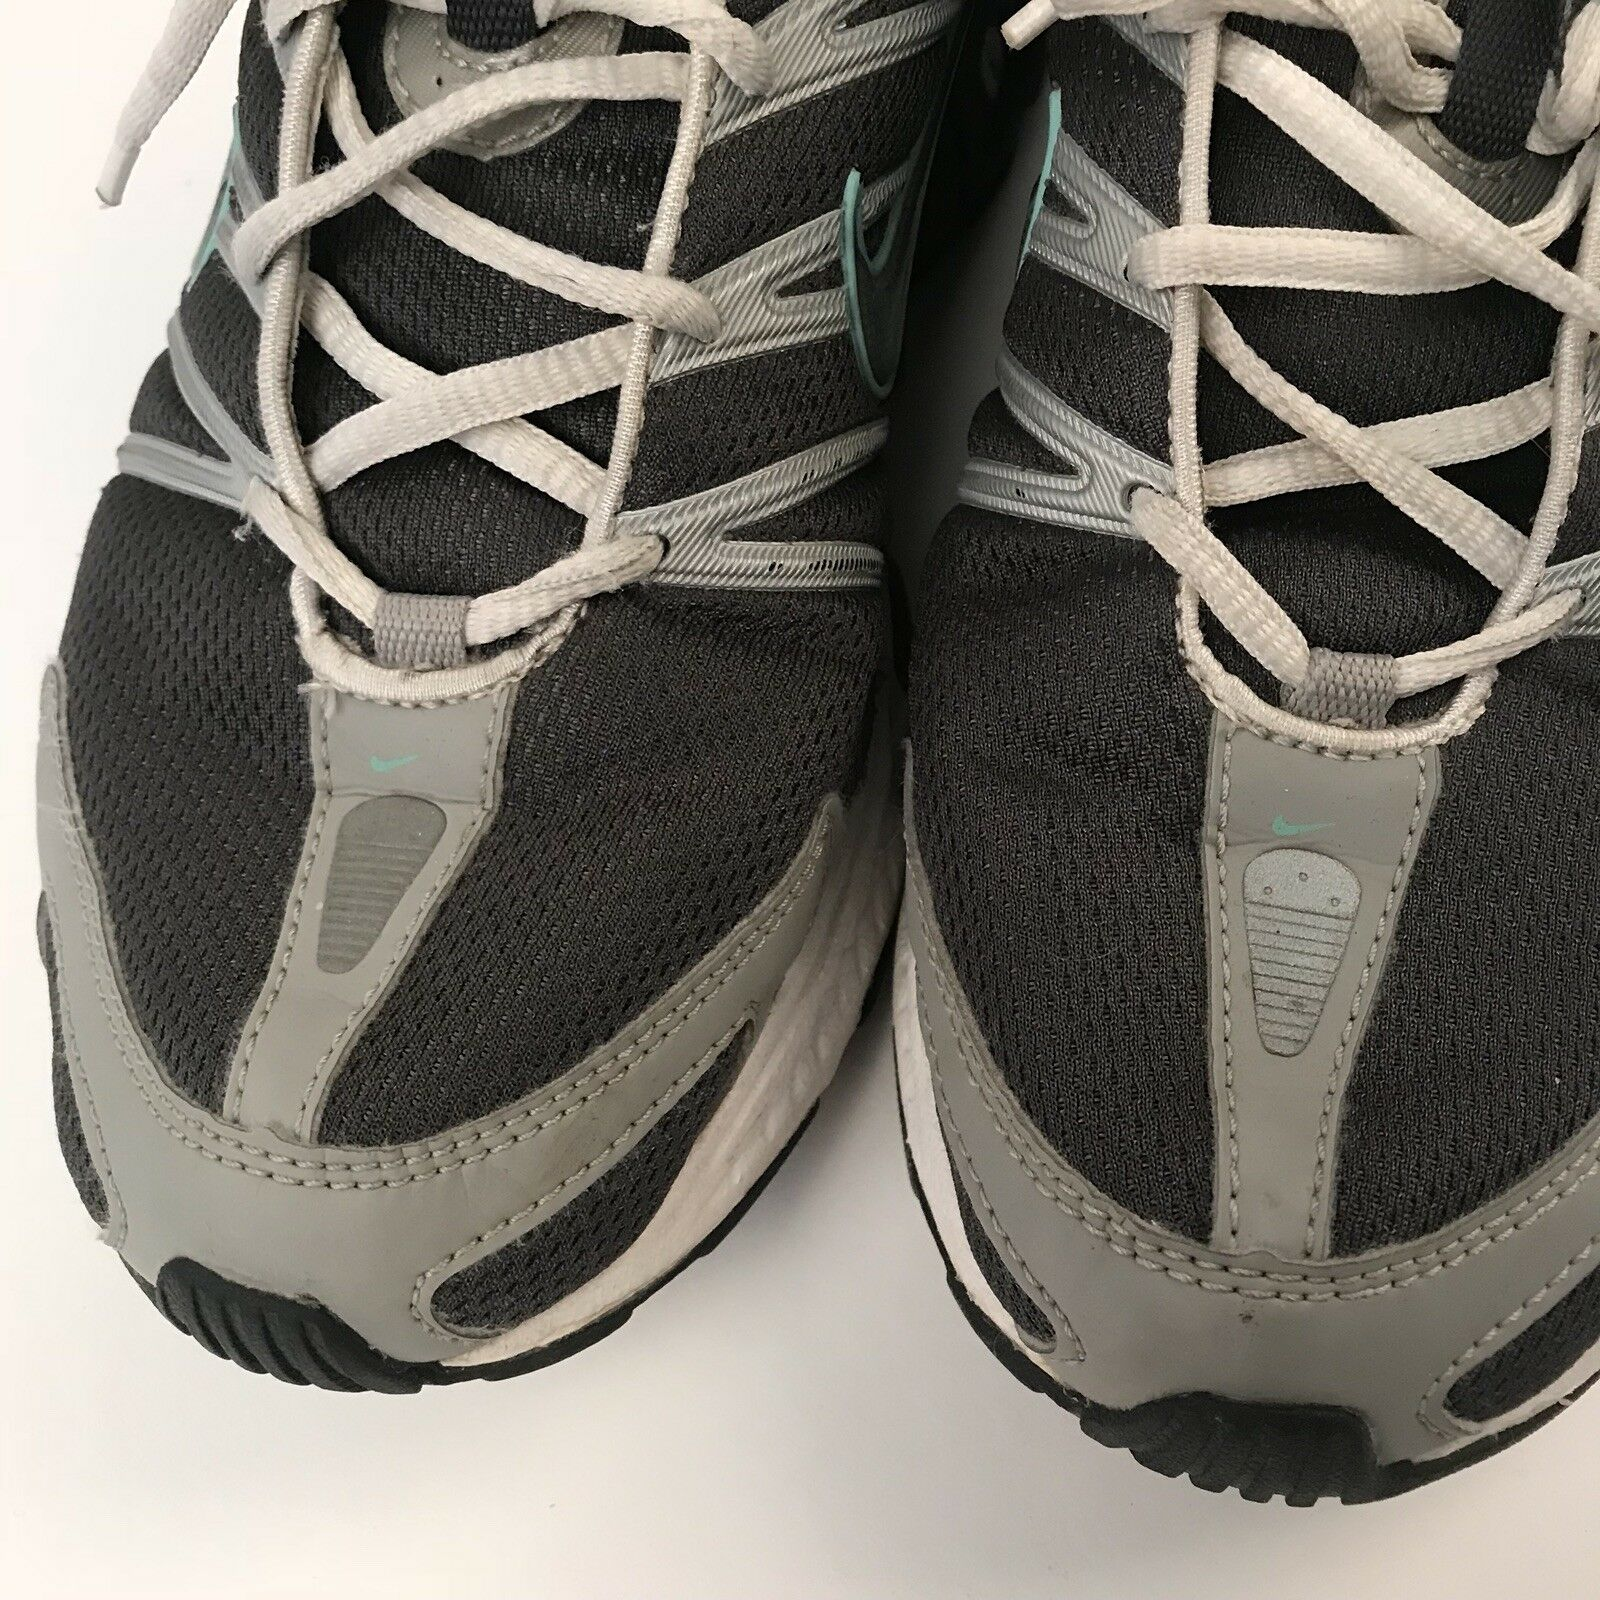 Nike Air Shoes Tri D Phylon Womens Running Shoes Air 316065-031 Size US 10 Gray Teal 6c75df